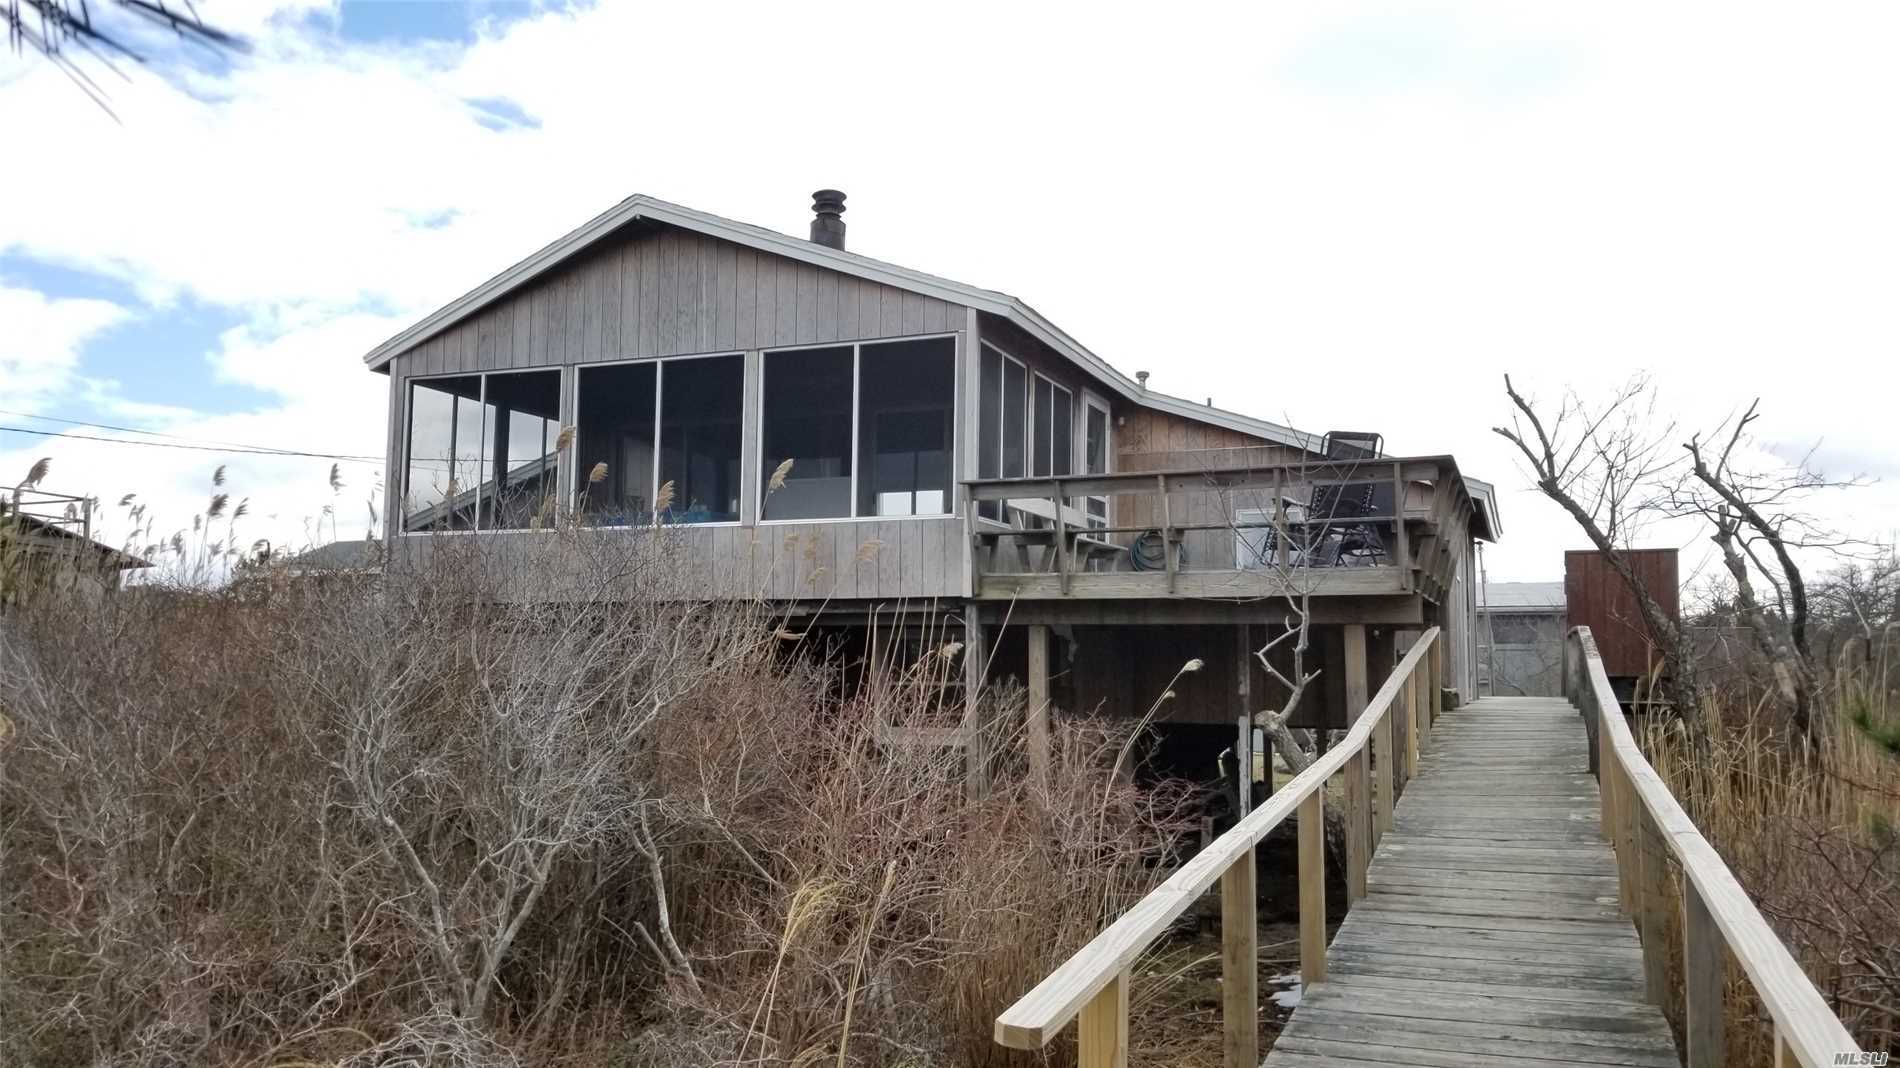 Amazing Bay Views From This Elevated Beach House. 3 Decks Plus A Large Screen Porch And Wood Burning Fireplace. Hardwood Floors Throughout. Move-In Condition. Excellent Income Potential. Short Walk To The Ocean, Bay, Ferry And Dining.